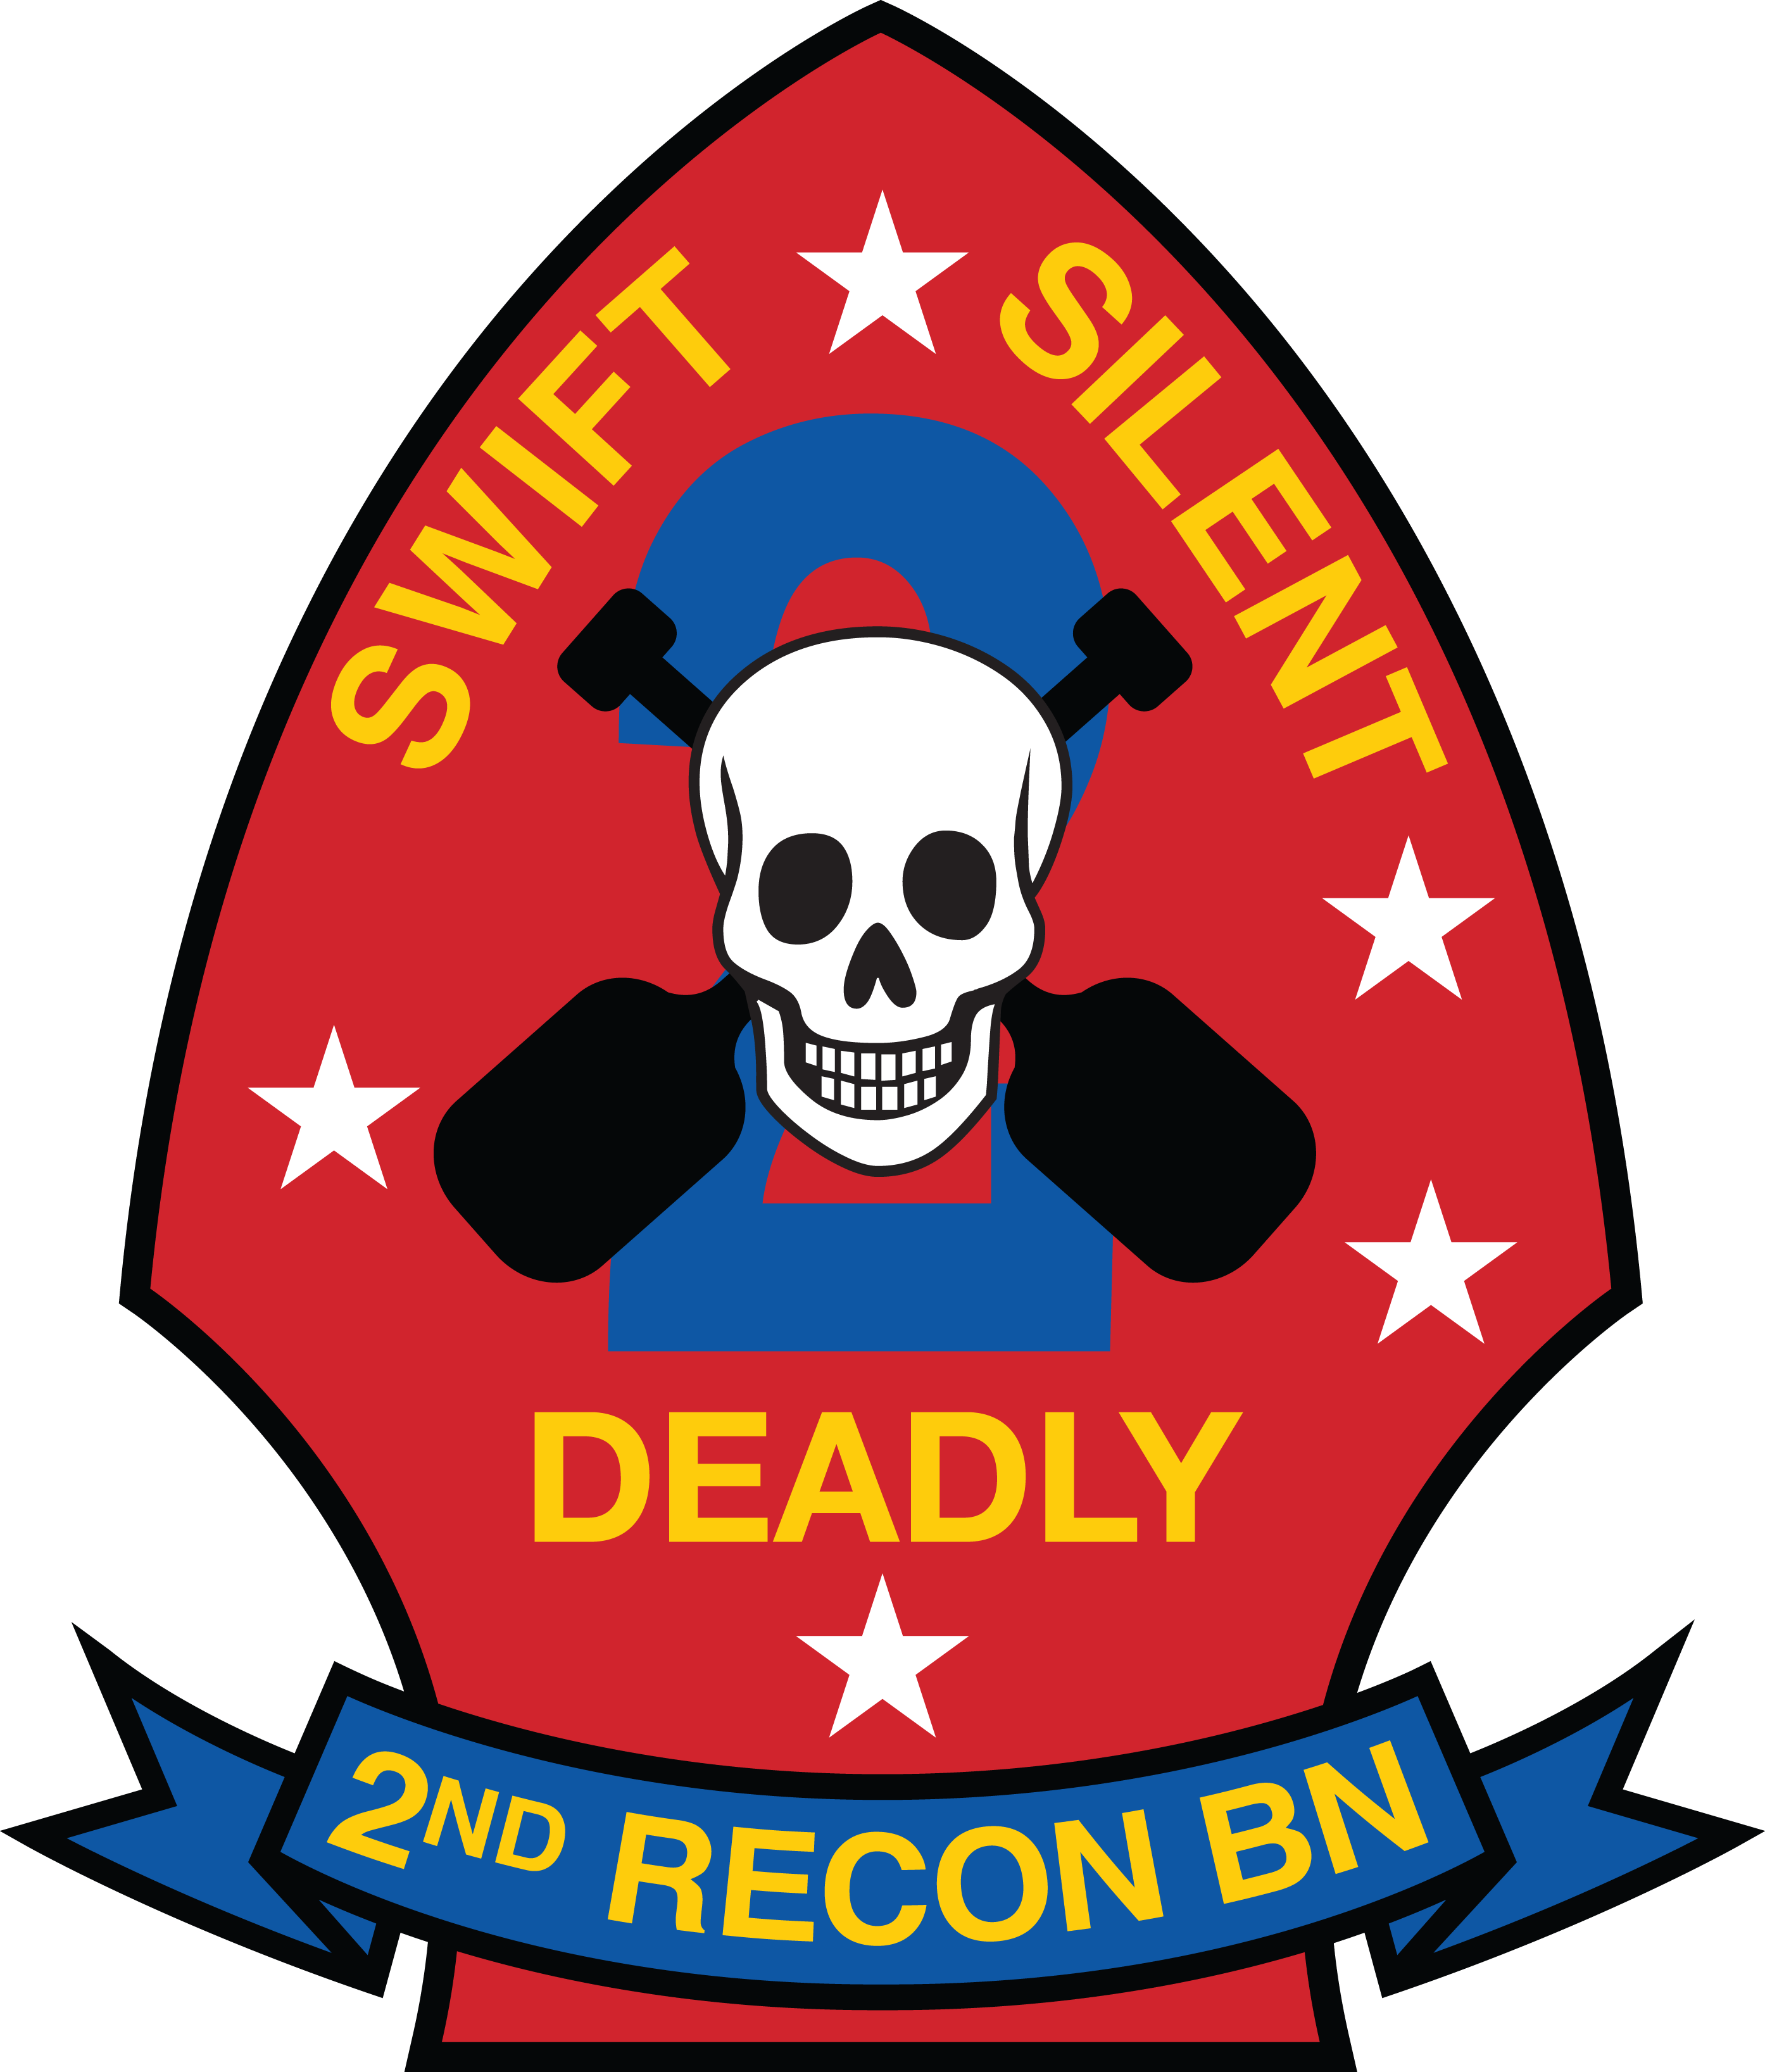 2nd Recon Battalion of United States Mariners Corps